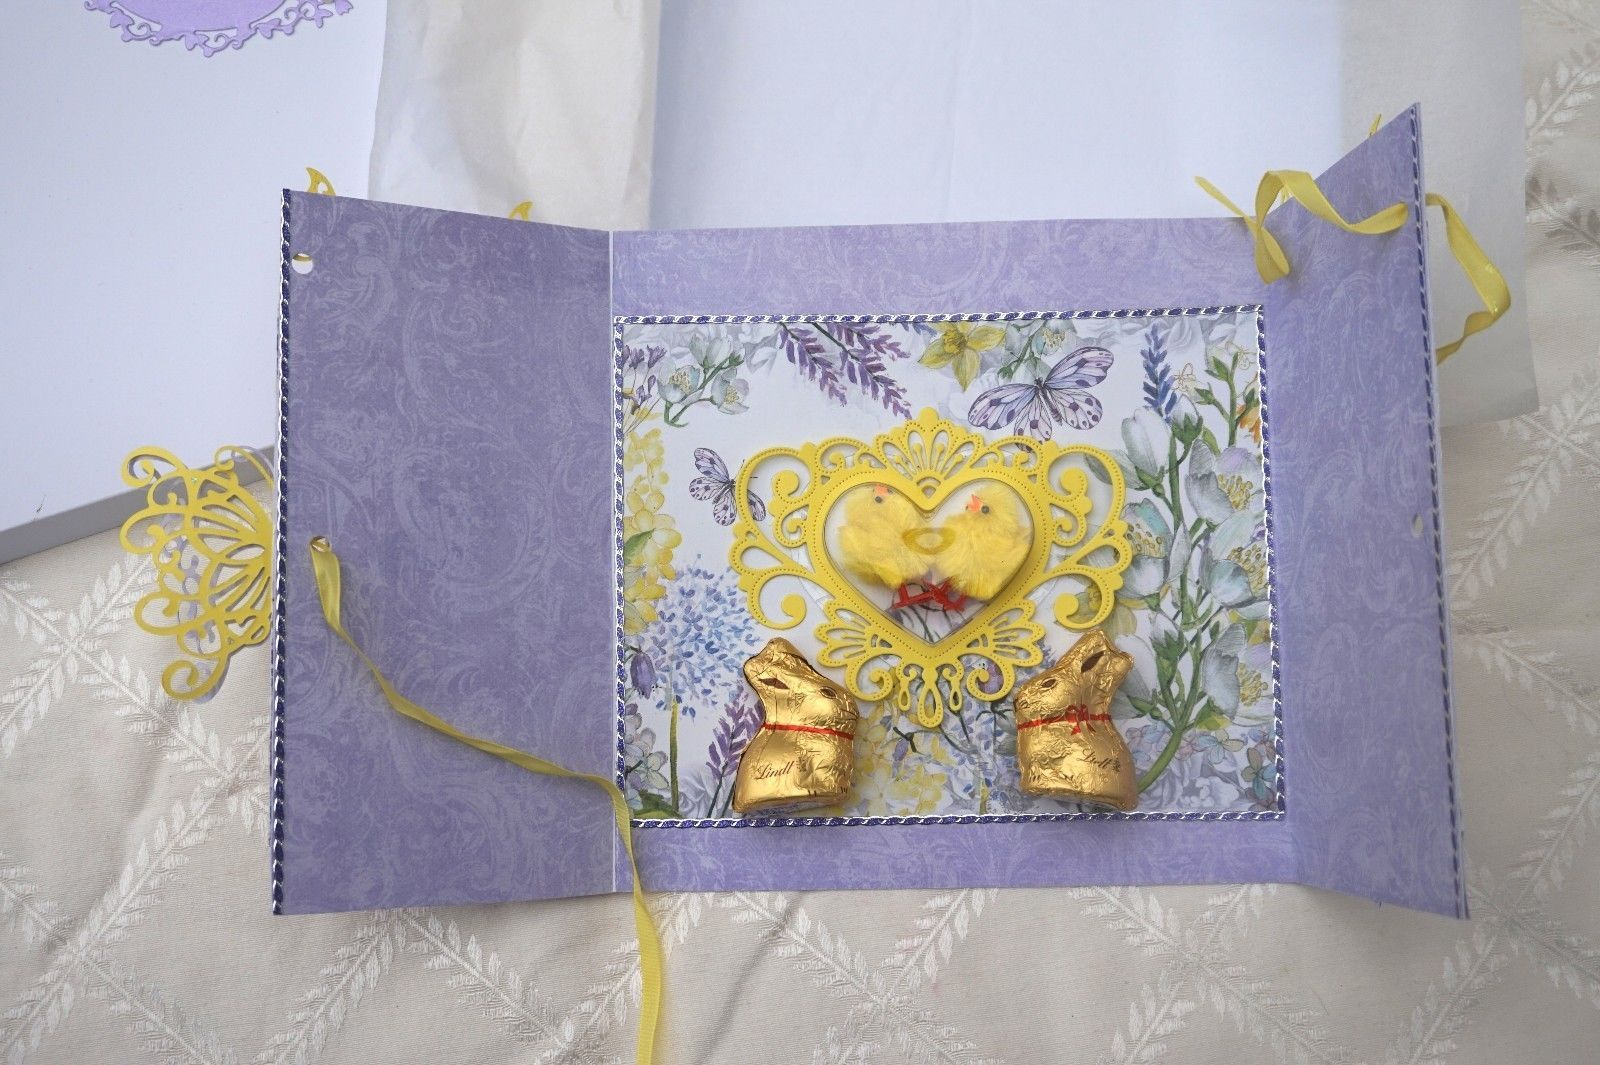 Made Keepsake Easter Card with Lindt Chocolate Bunnies Stunning – Boxed Easter Cards